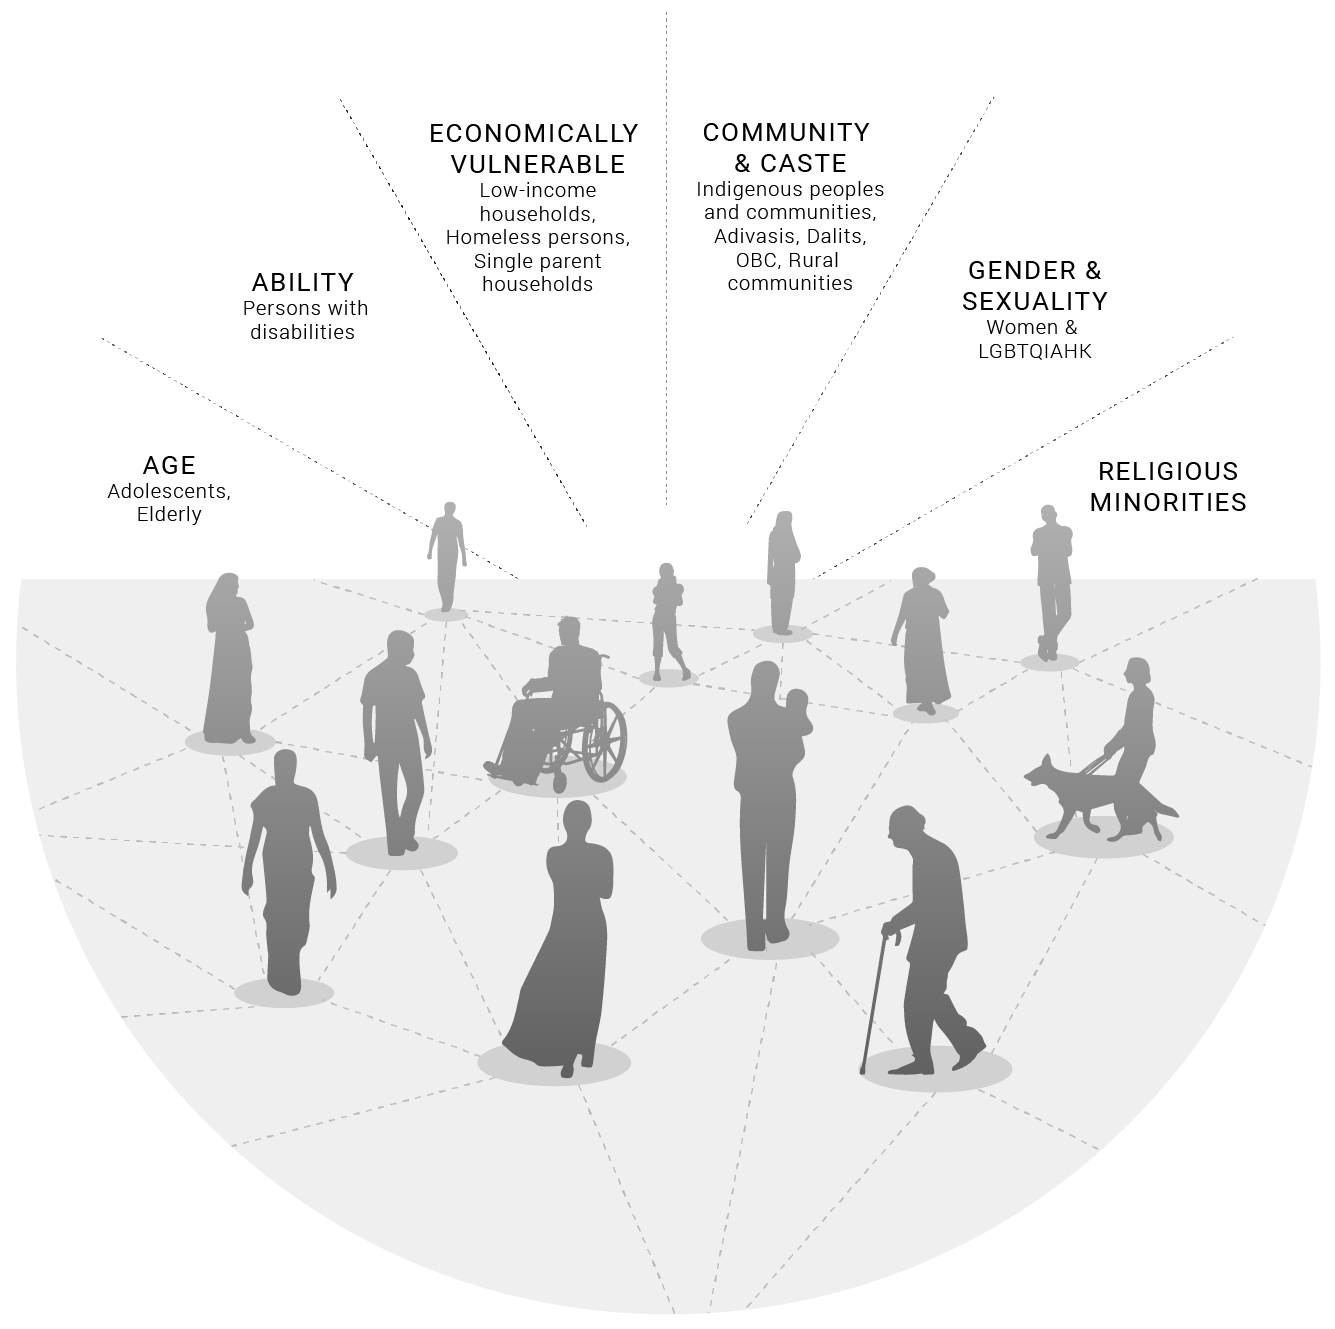 MHI works with marginalized communities: Graphic